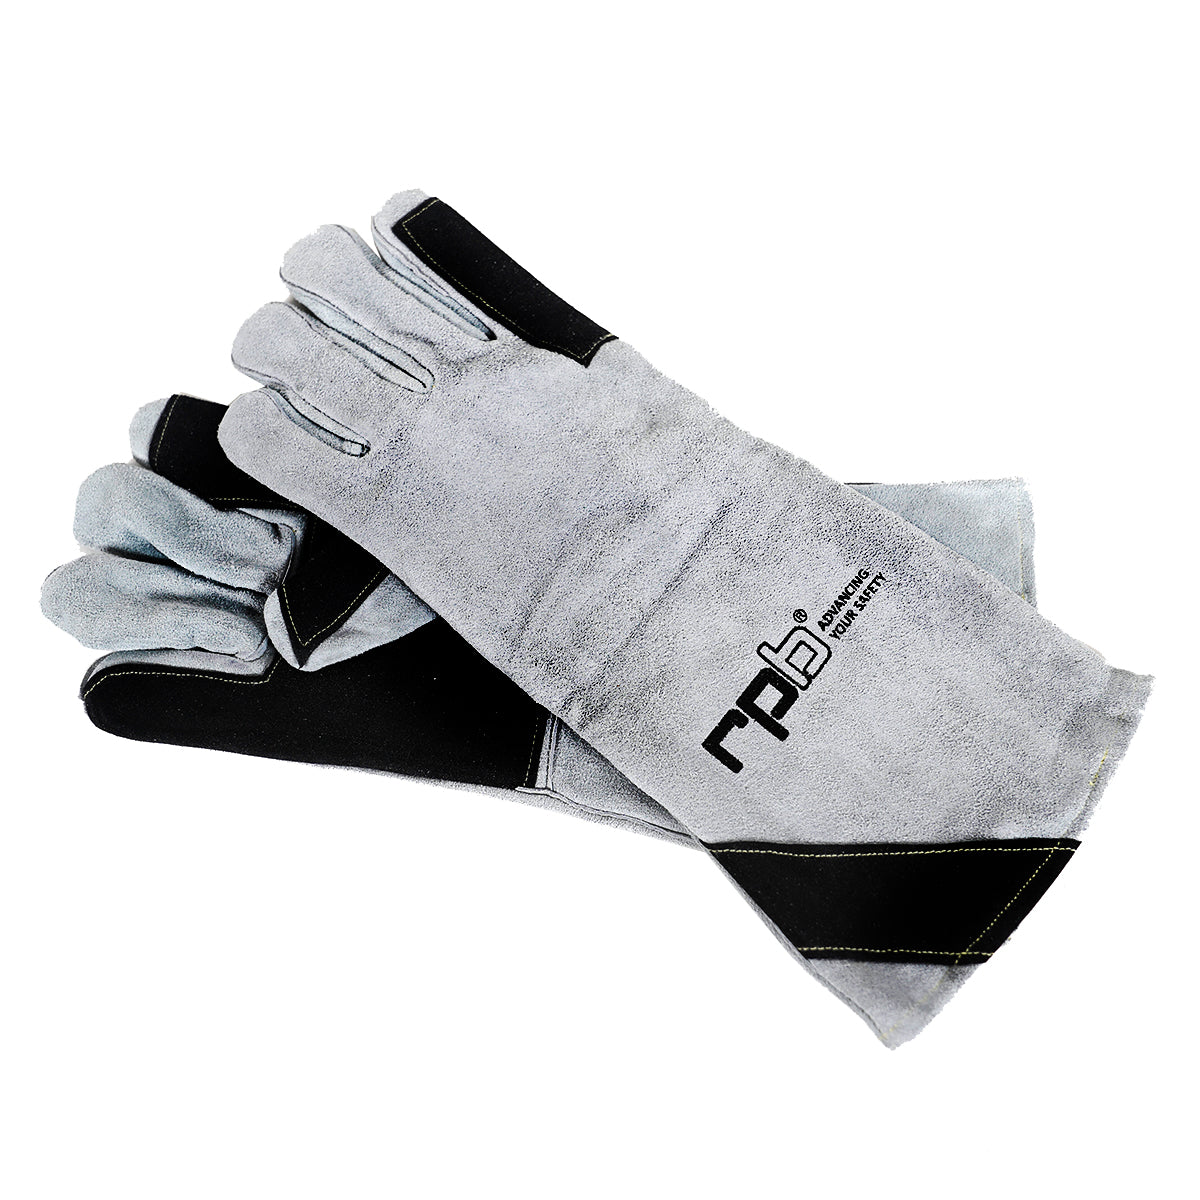 Nova 3® Leather Gloves 07-701 - 134870/001